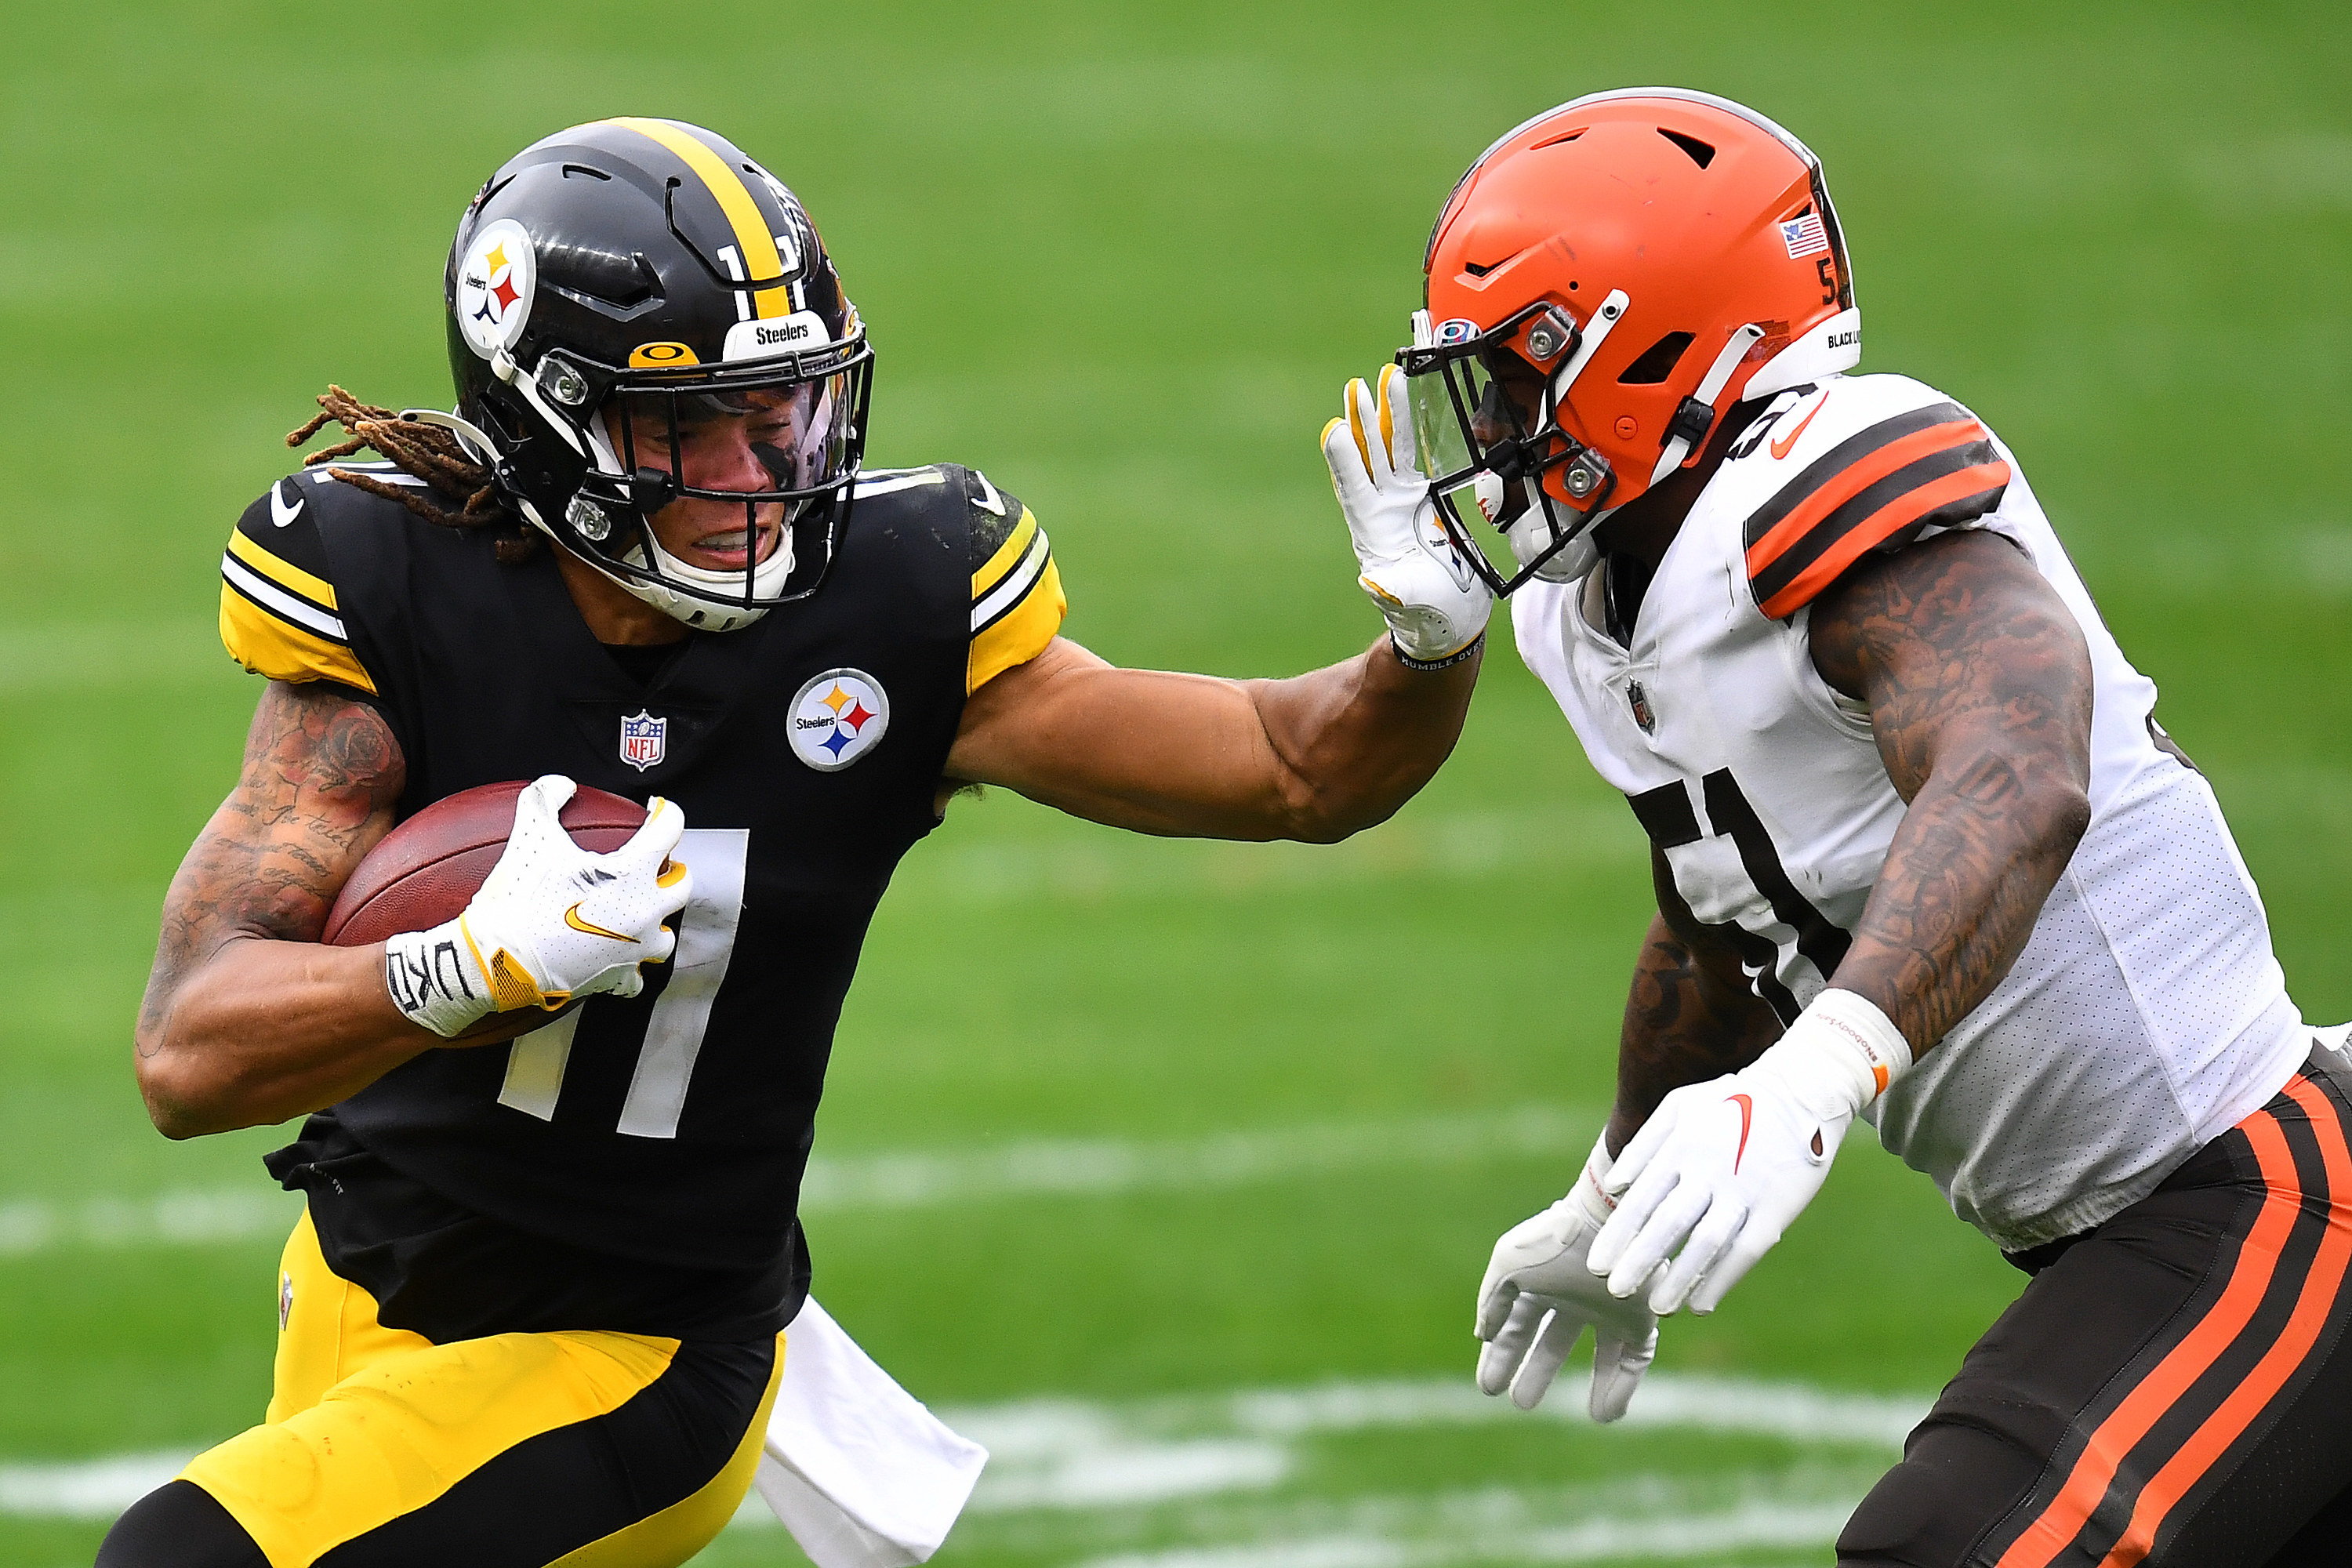 Black and gold Steelers uniforms